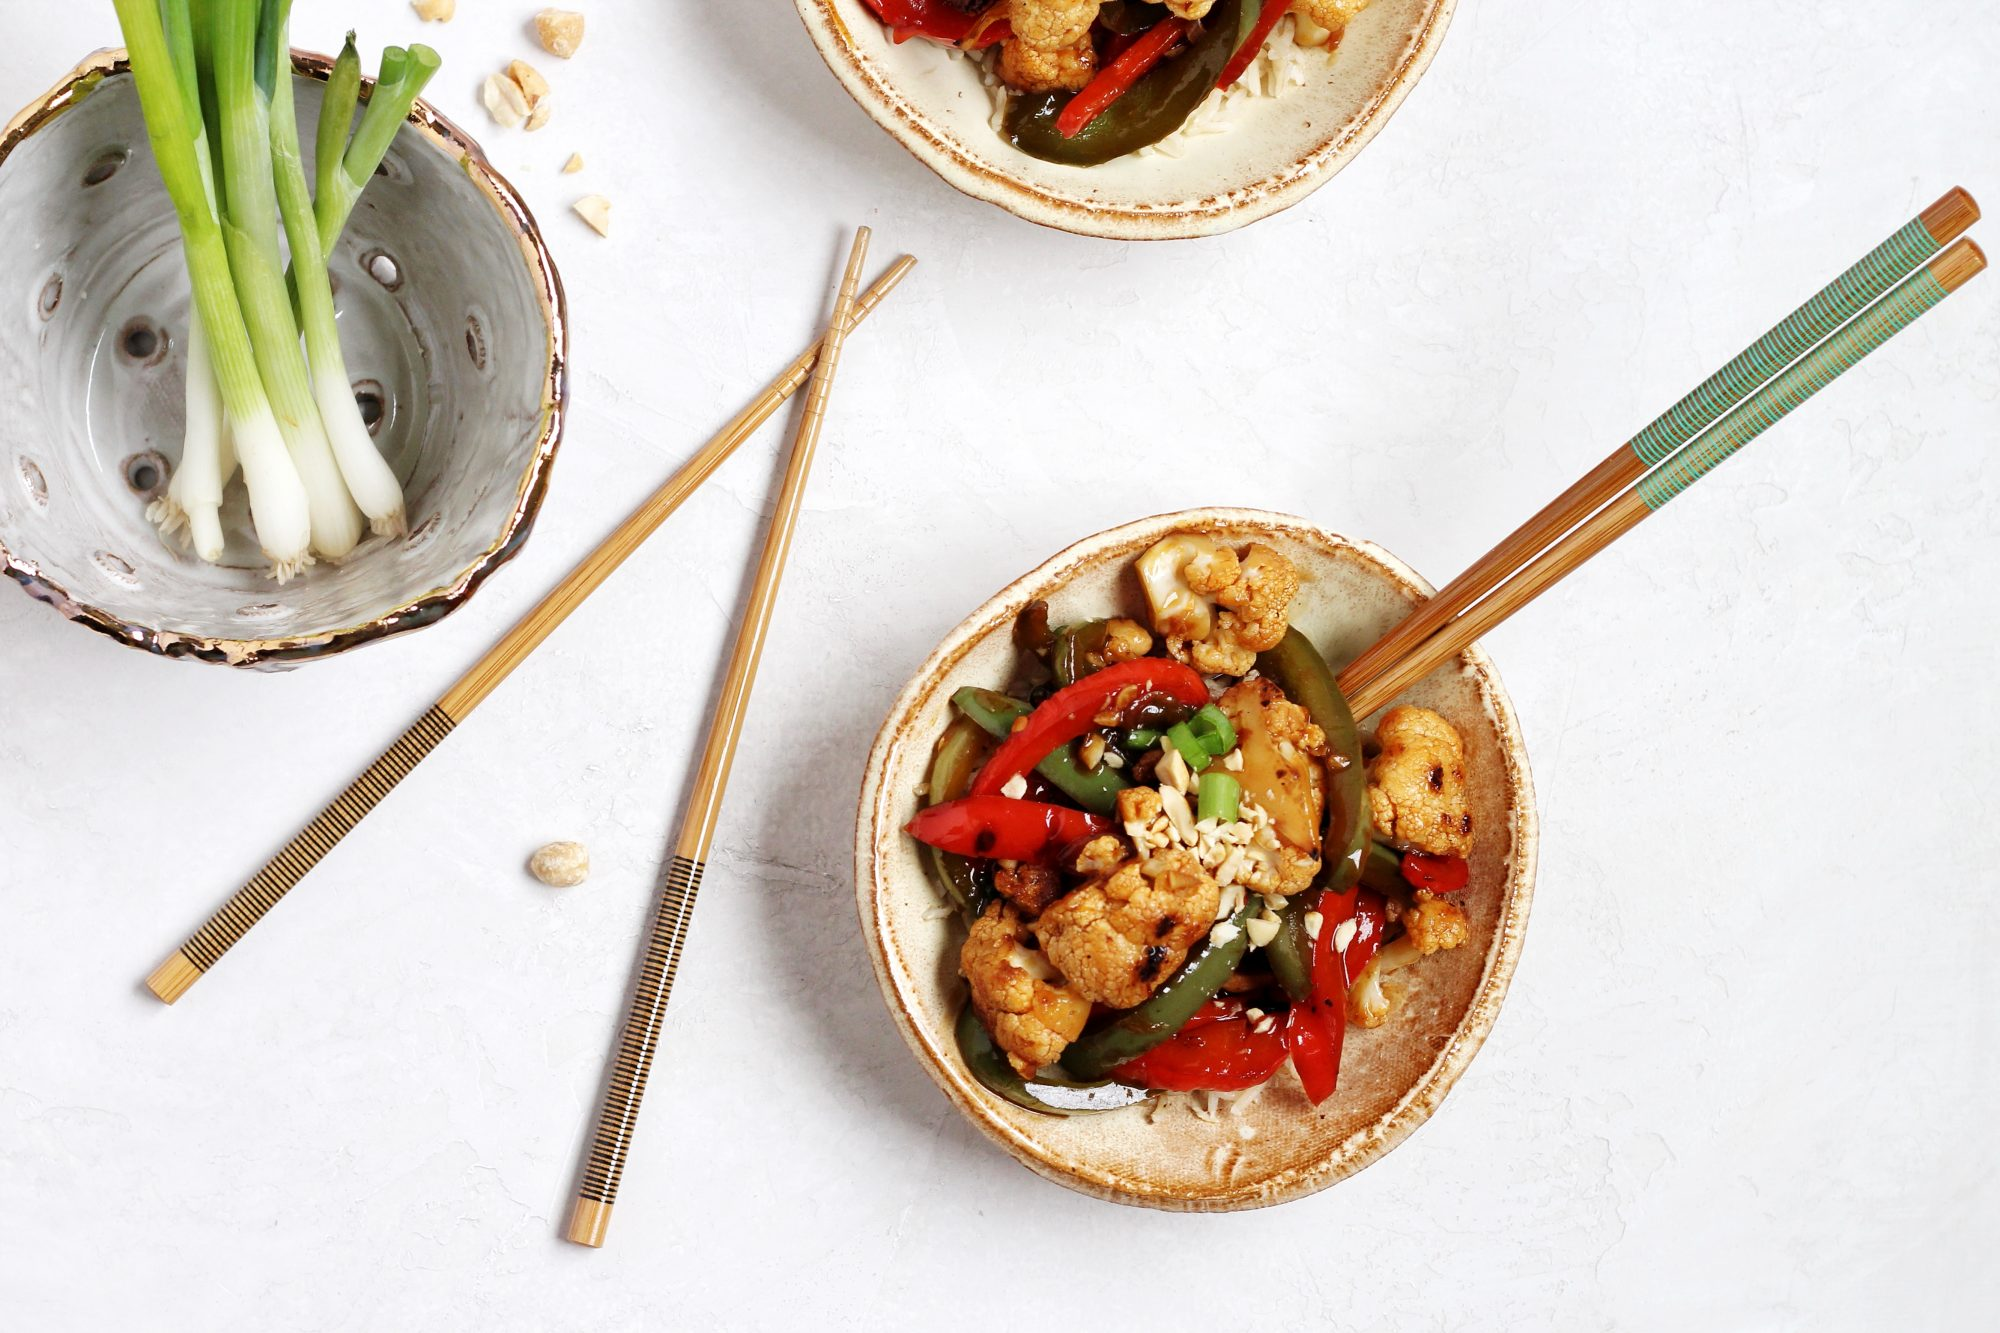 Vegan and gluten-free Kung Pao Cauliflower is a quick and tasty meal